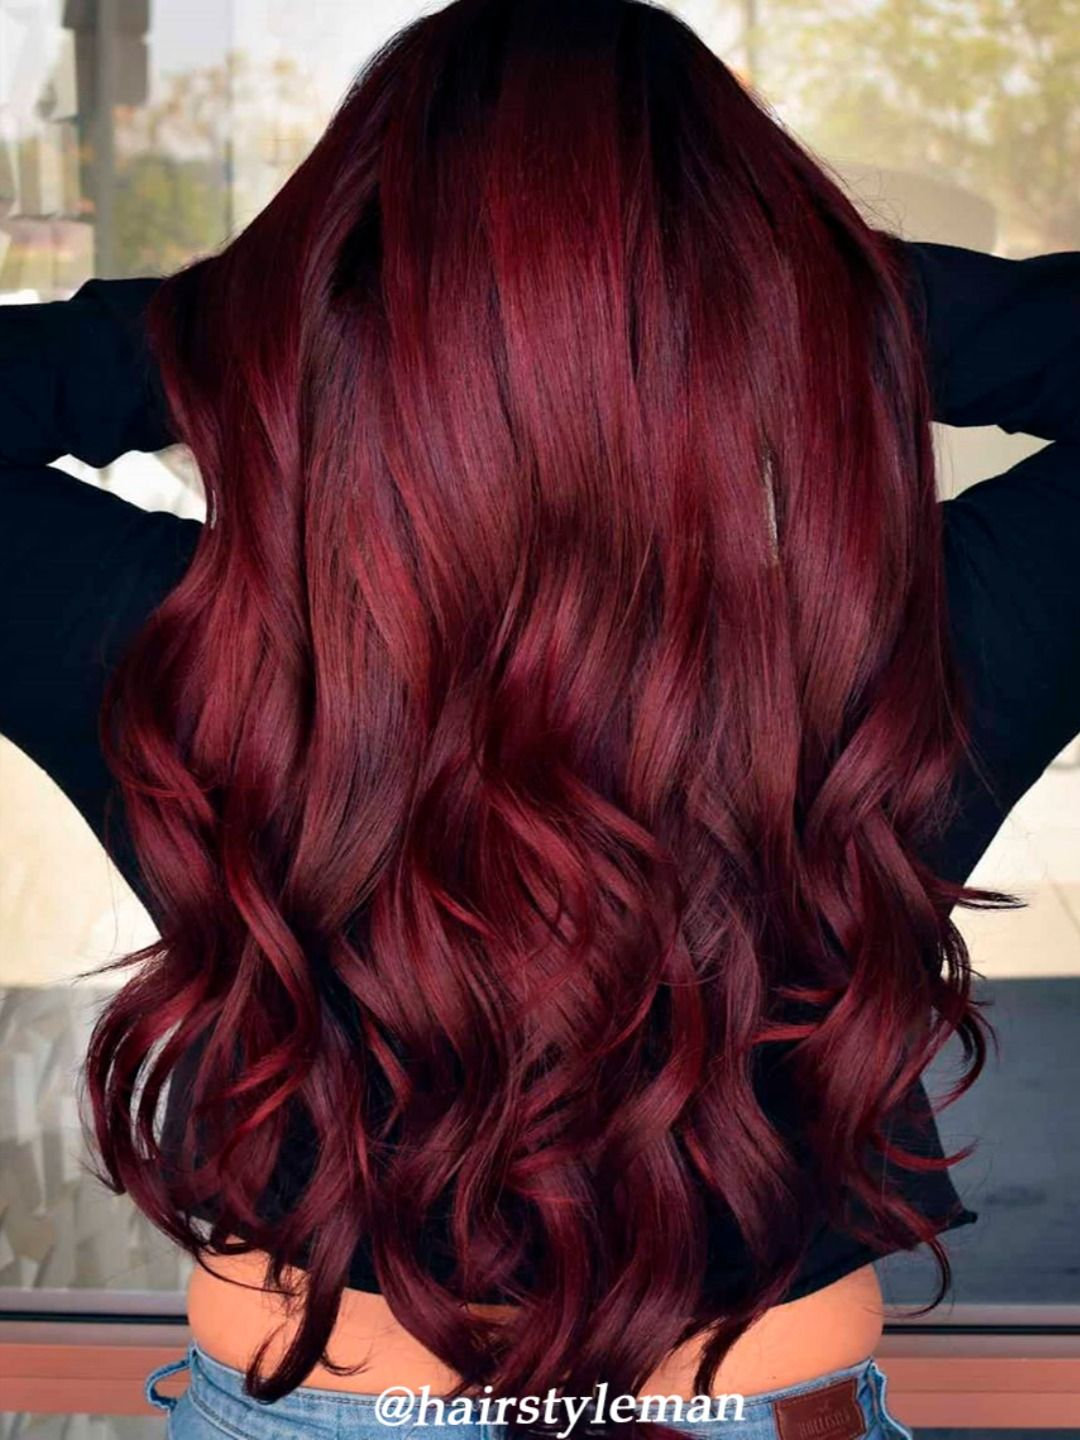 5 Of The Cutest Hair Color Ideas For 2020 Stylish Belles In 2020 Red Hair Color Dark Red Hair Color Wine Red Hair